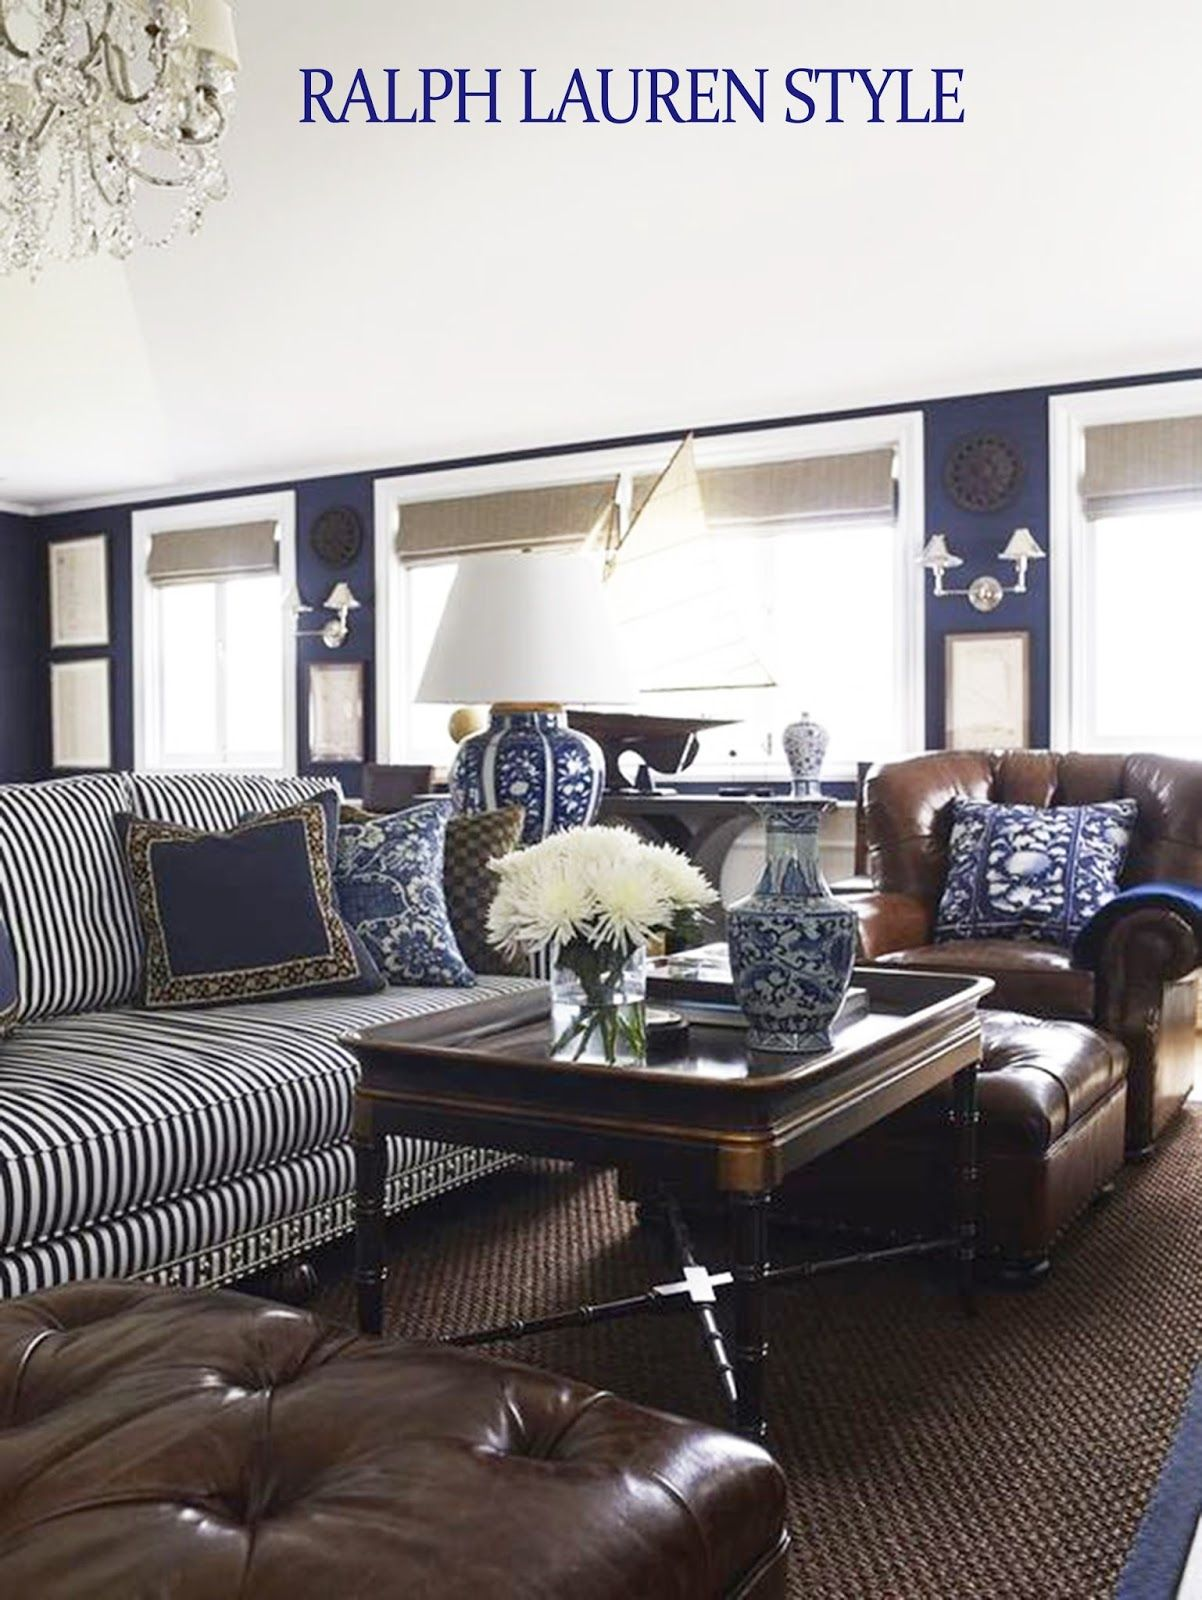 Coastal style ralph lauren in navy brown ralph for Ralph lauren living room designs